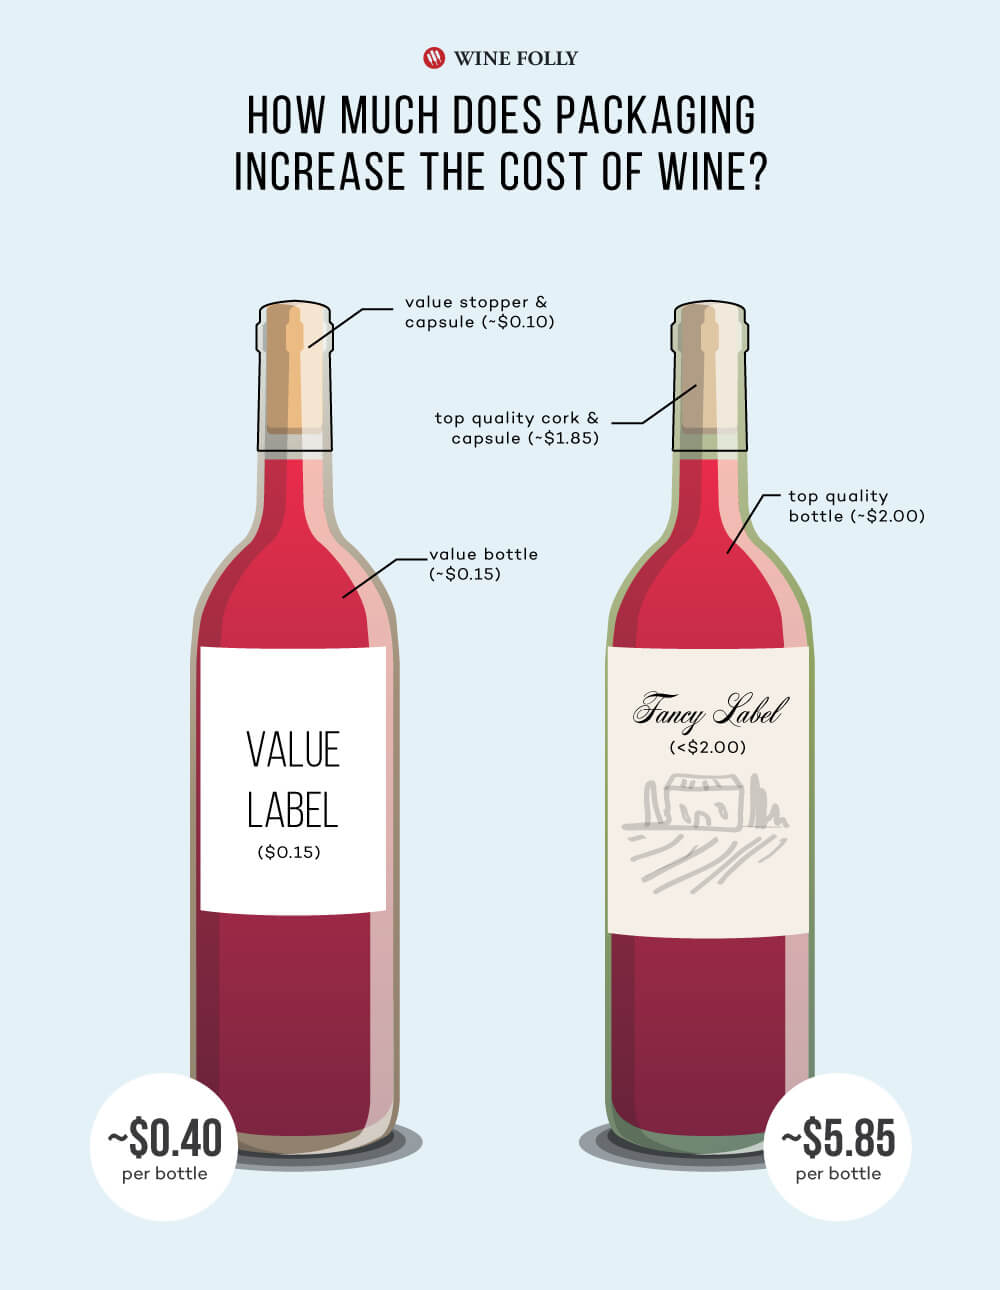 The cost of wine packaging and how it affects the price of a bottle of wine - 2019 Wine Folly infographic